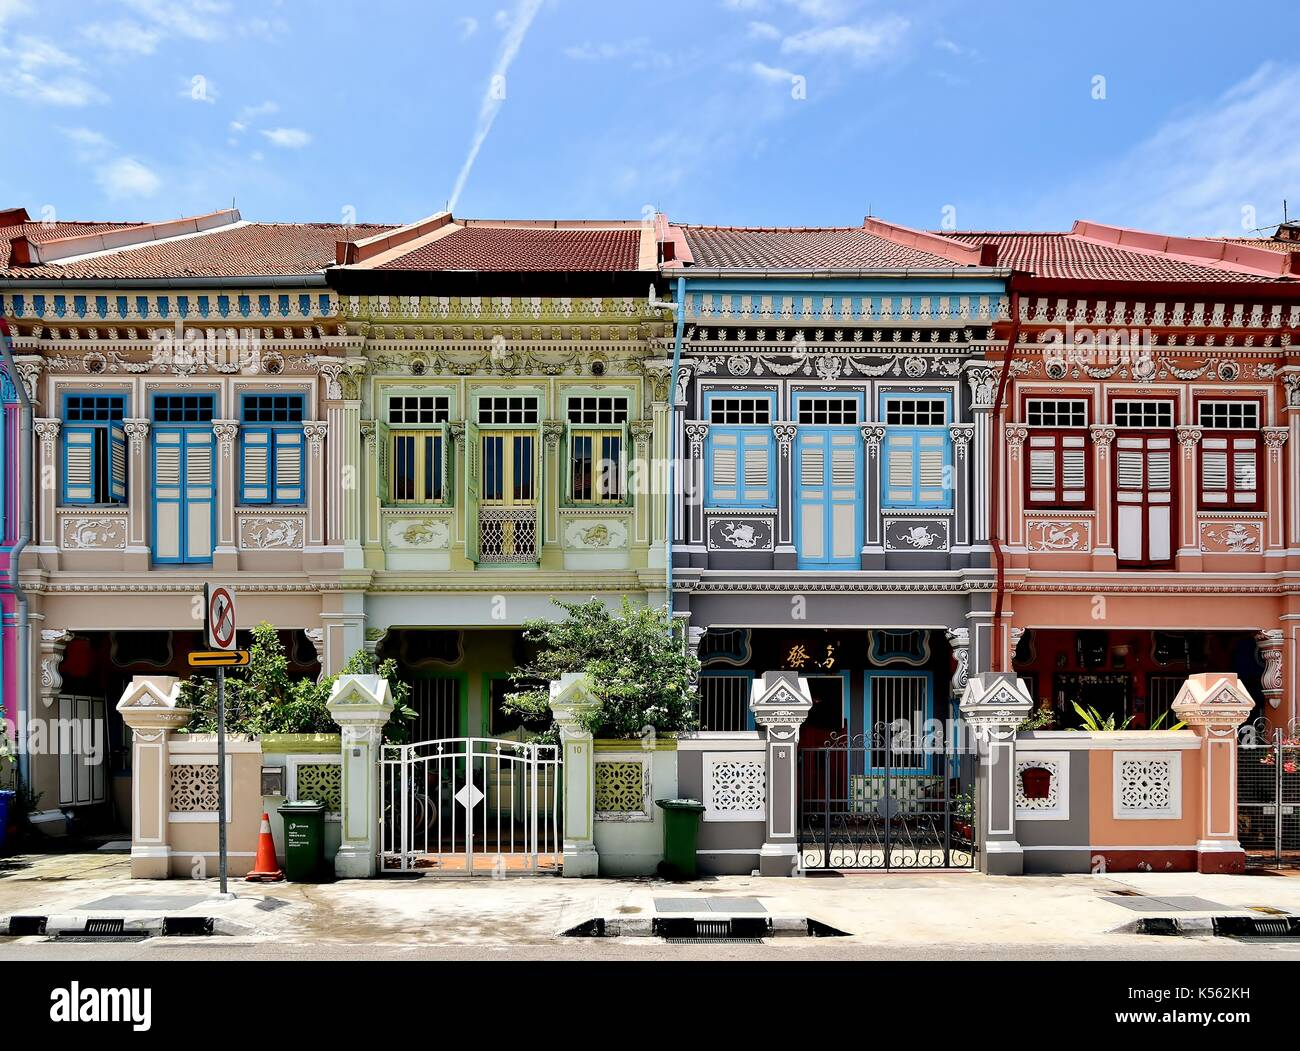 A row of four traditional Singapore Peranakan shop houses in the historic Joo Chiat area. Stock Photo